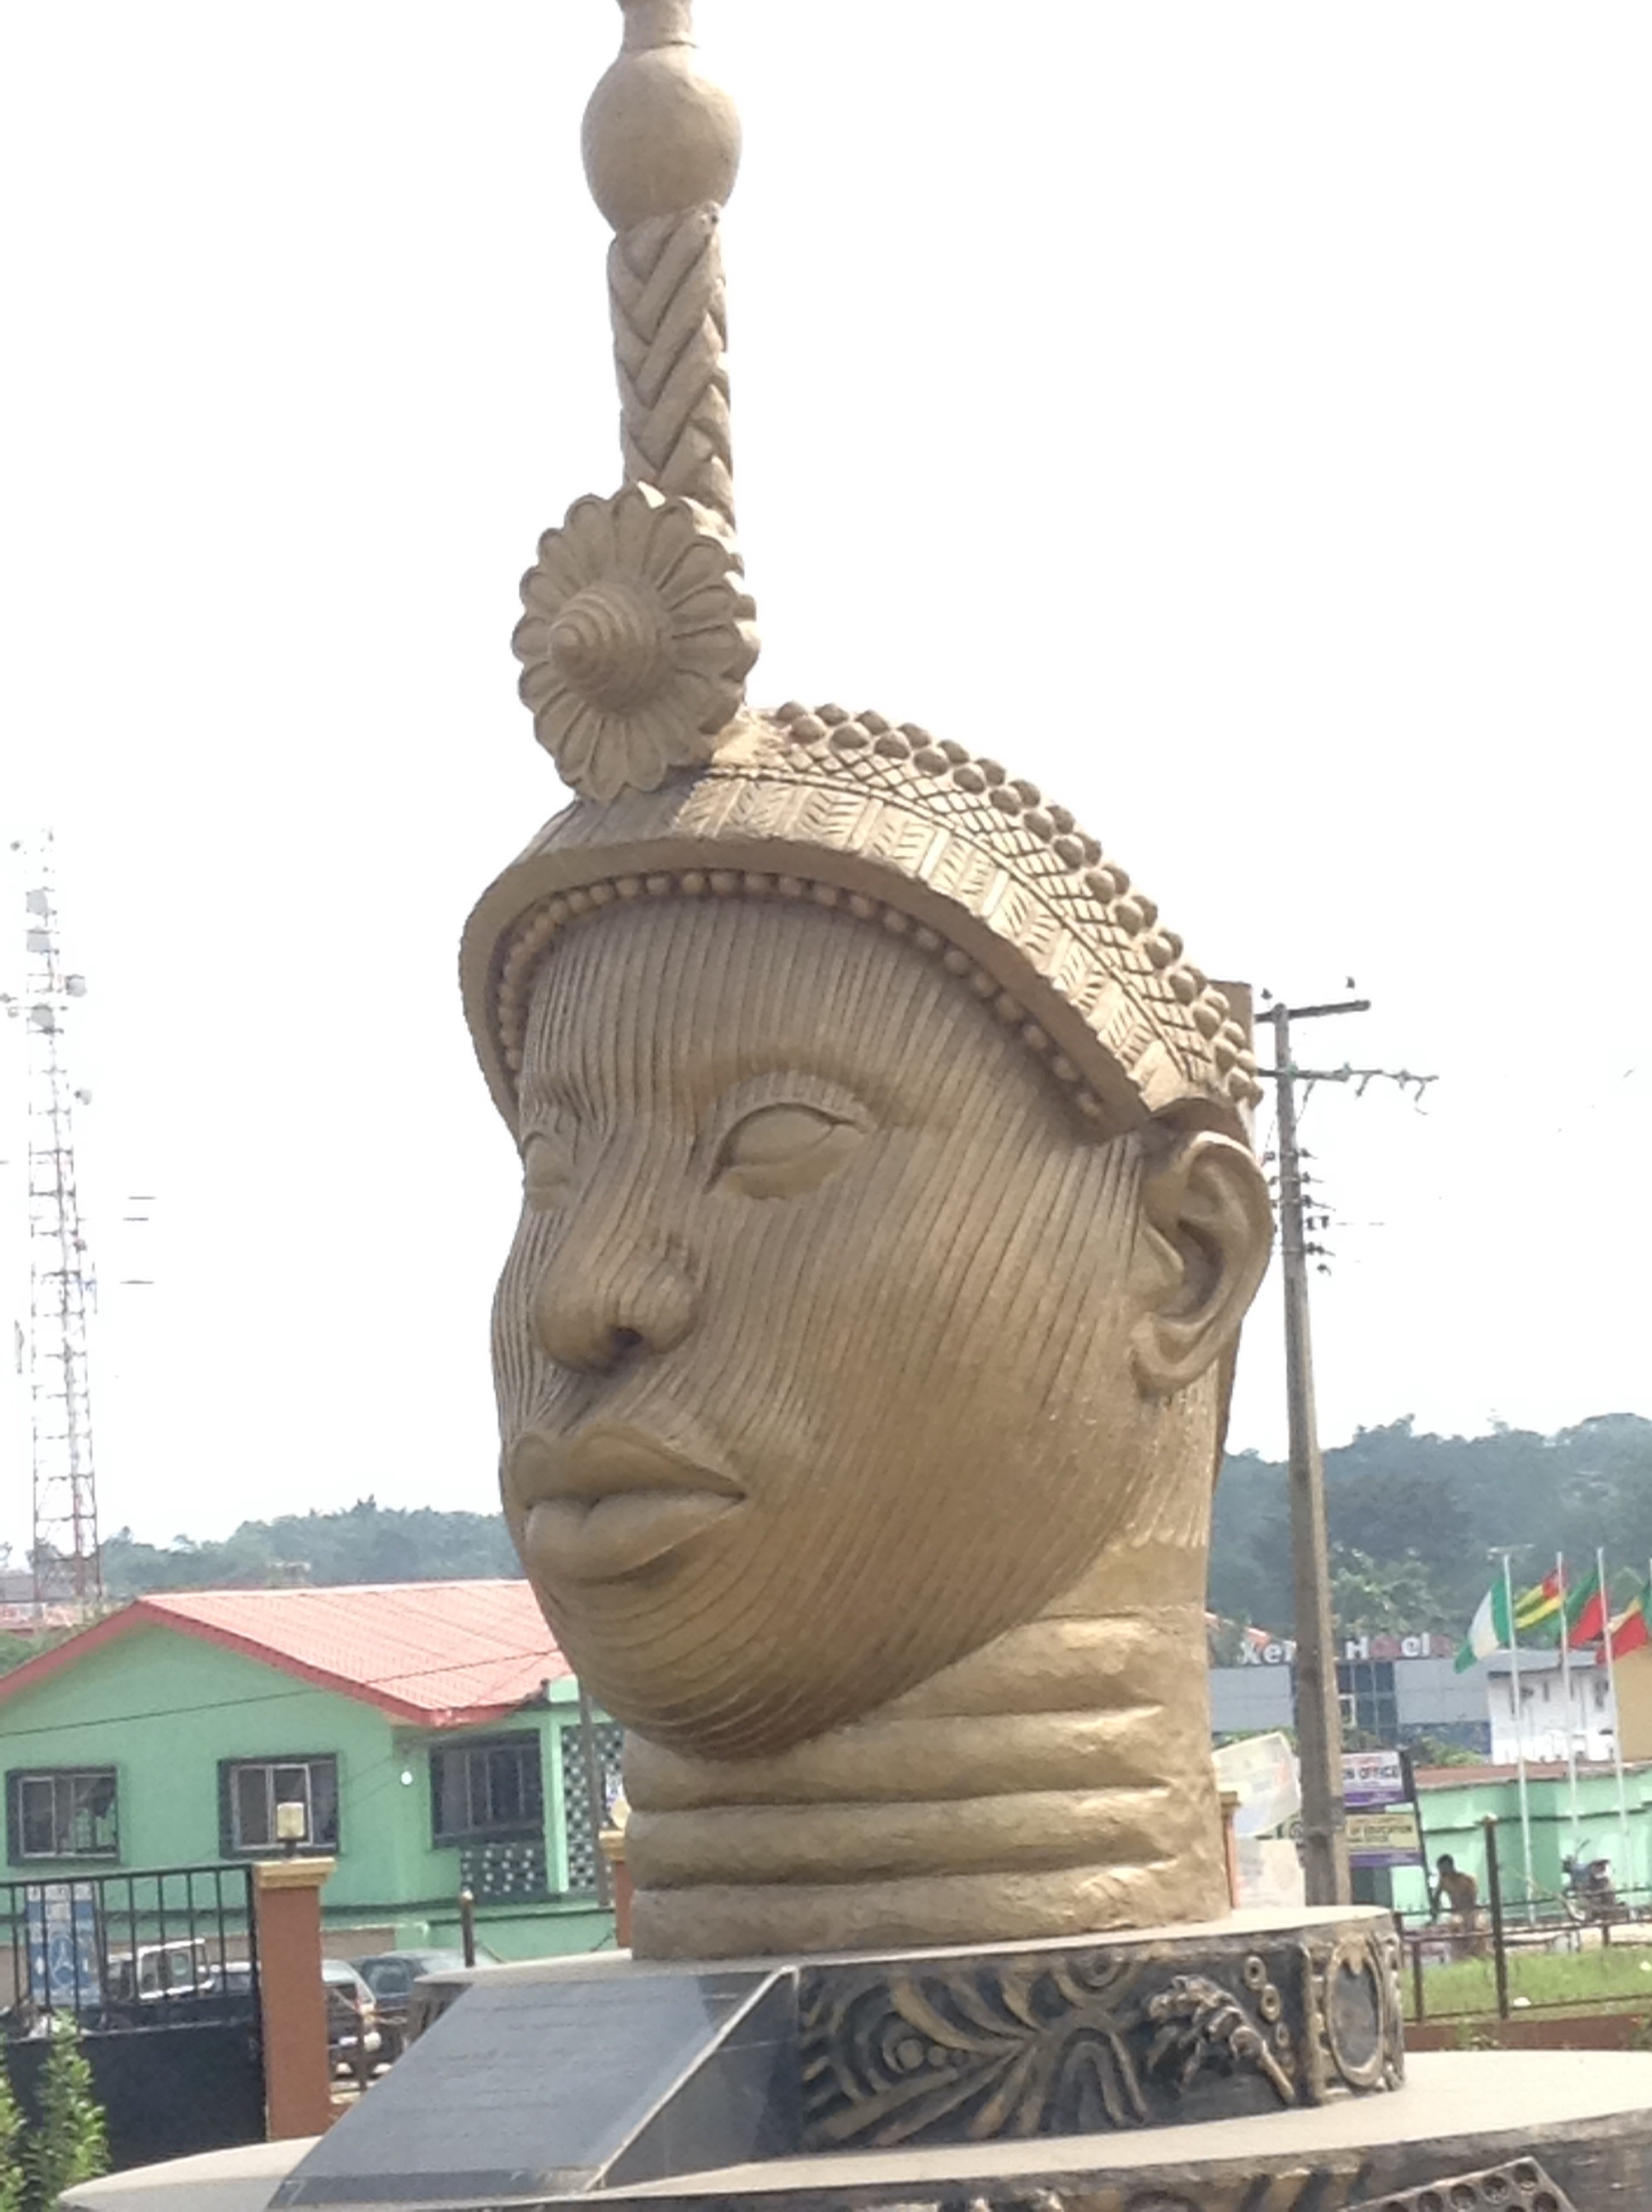 image4 Ife People: The Ancient Artistic, Highly Spiritual And The First Yoruba People